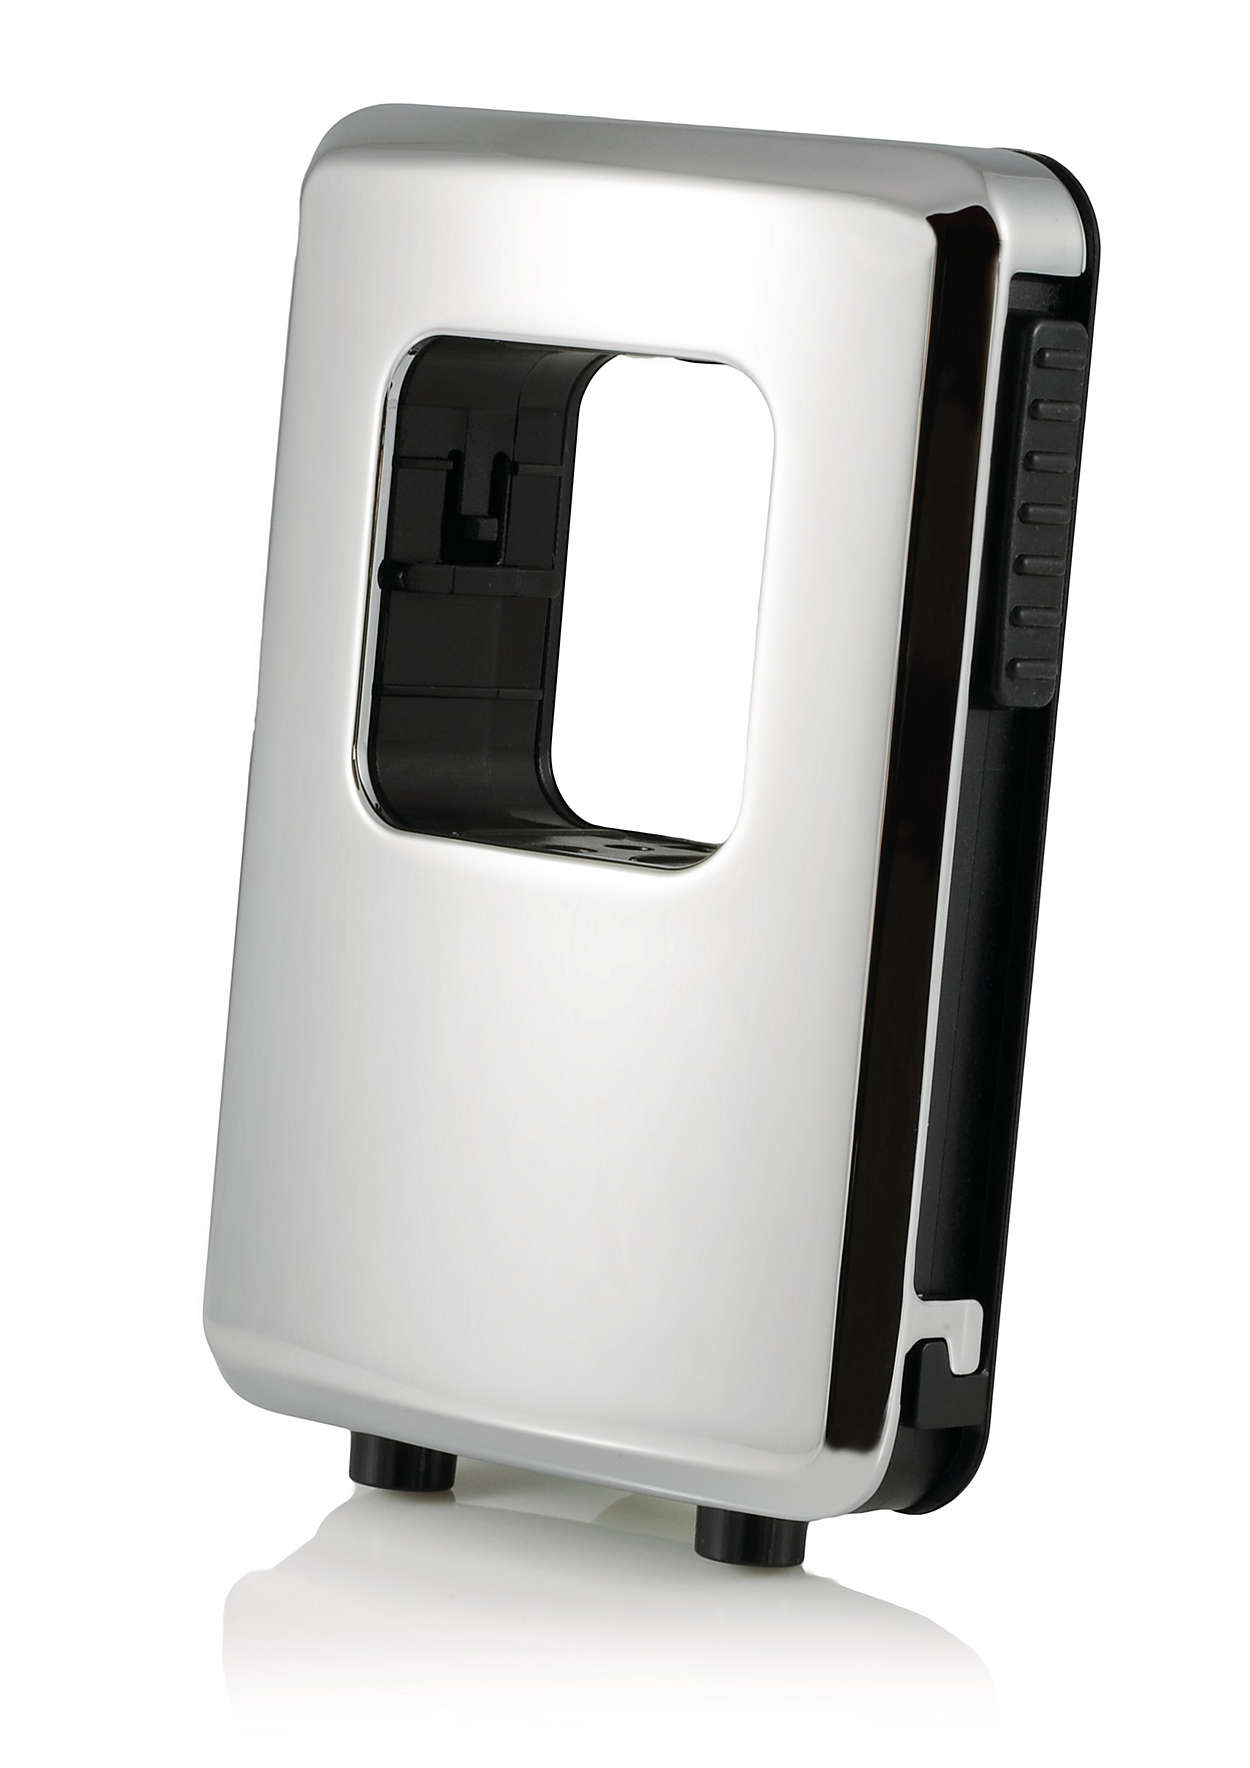 To cover the foam chamber of your SENSEO® coffee machine.